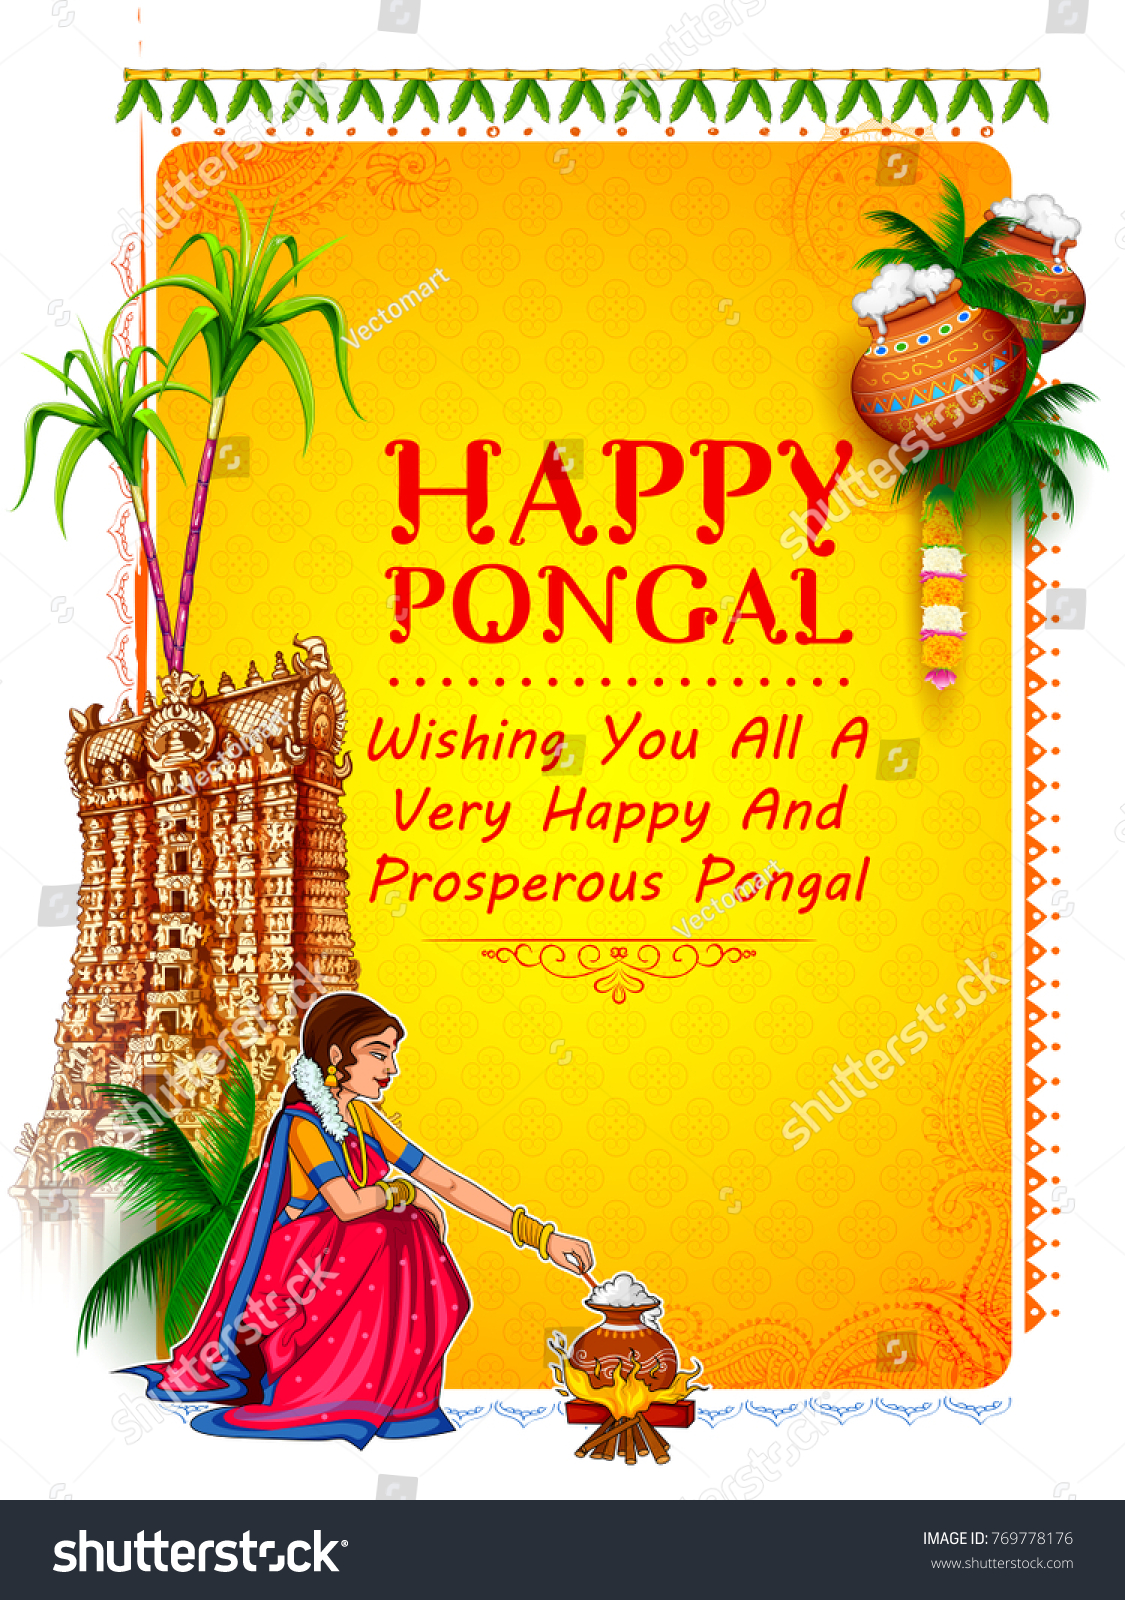 Illustration Happy Pongal Holiday Harvest Festival Stock Vector